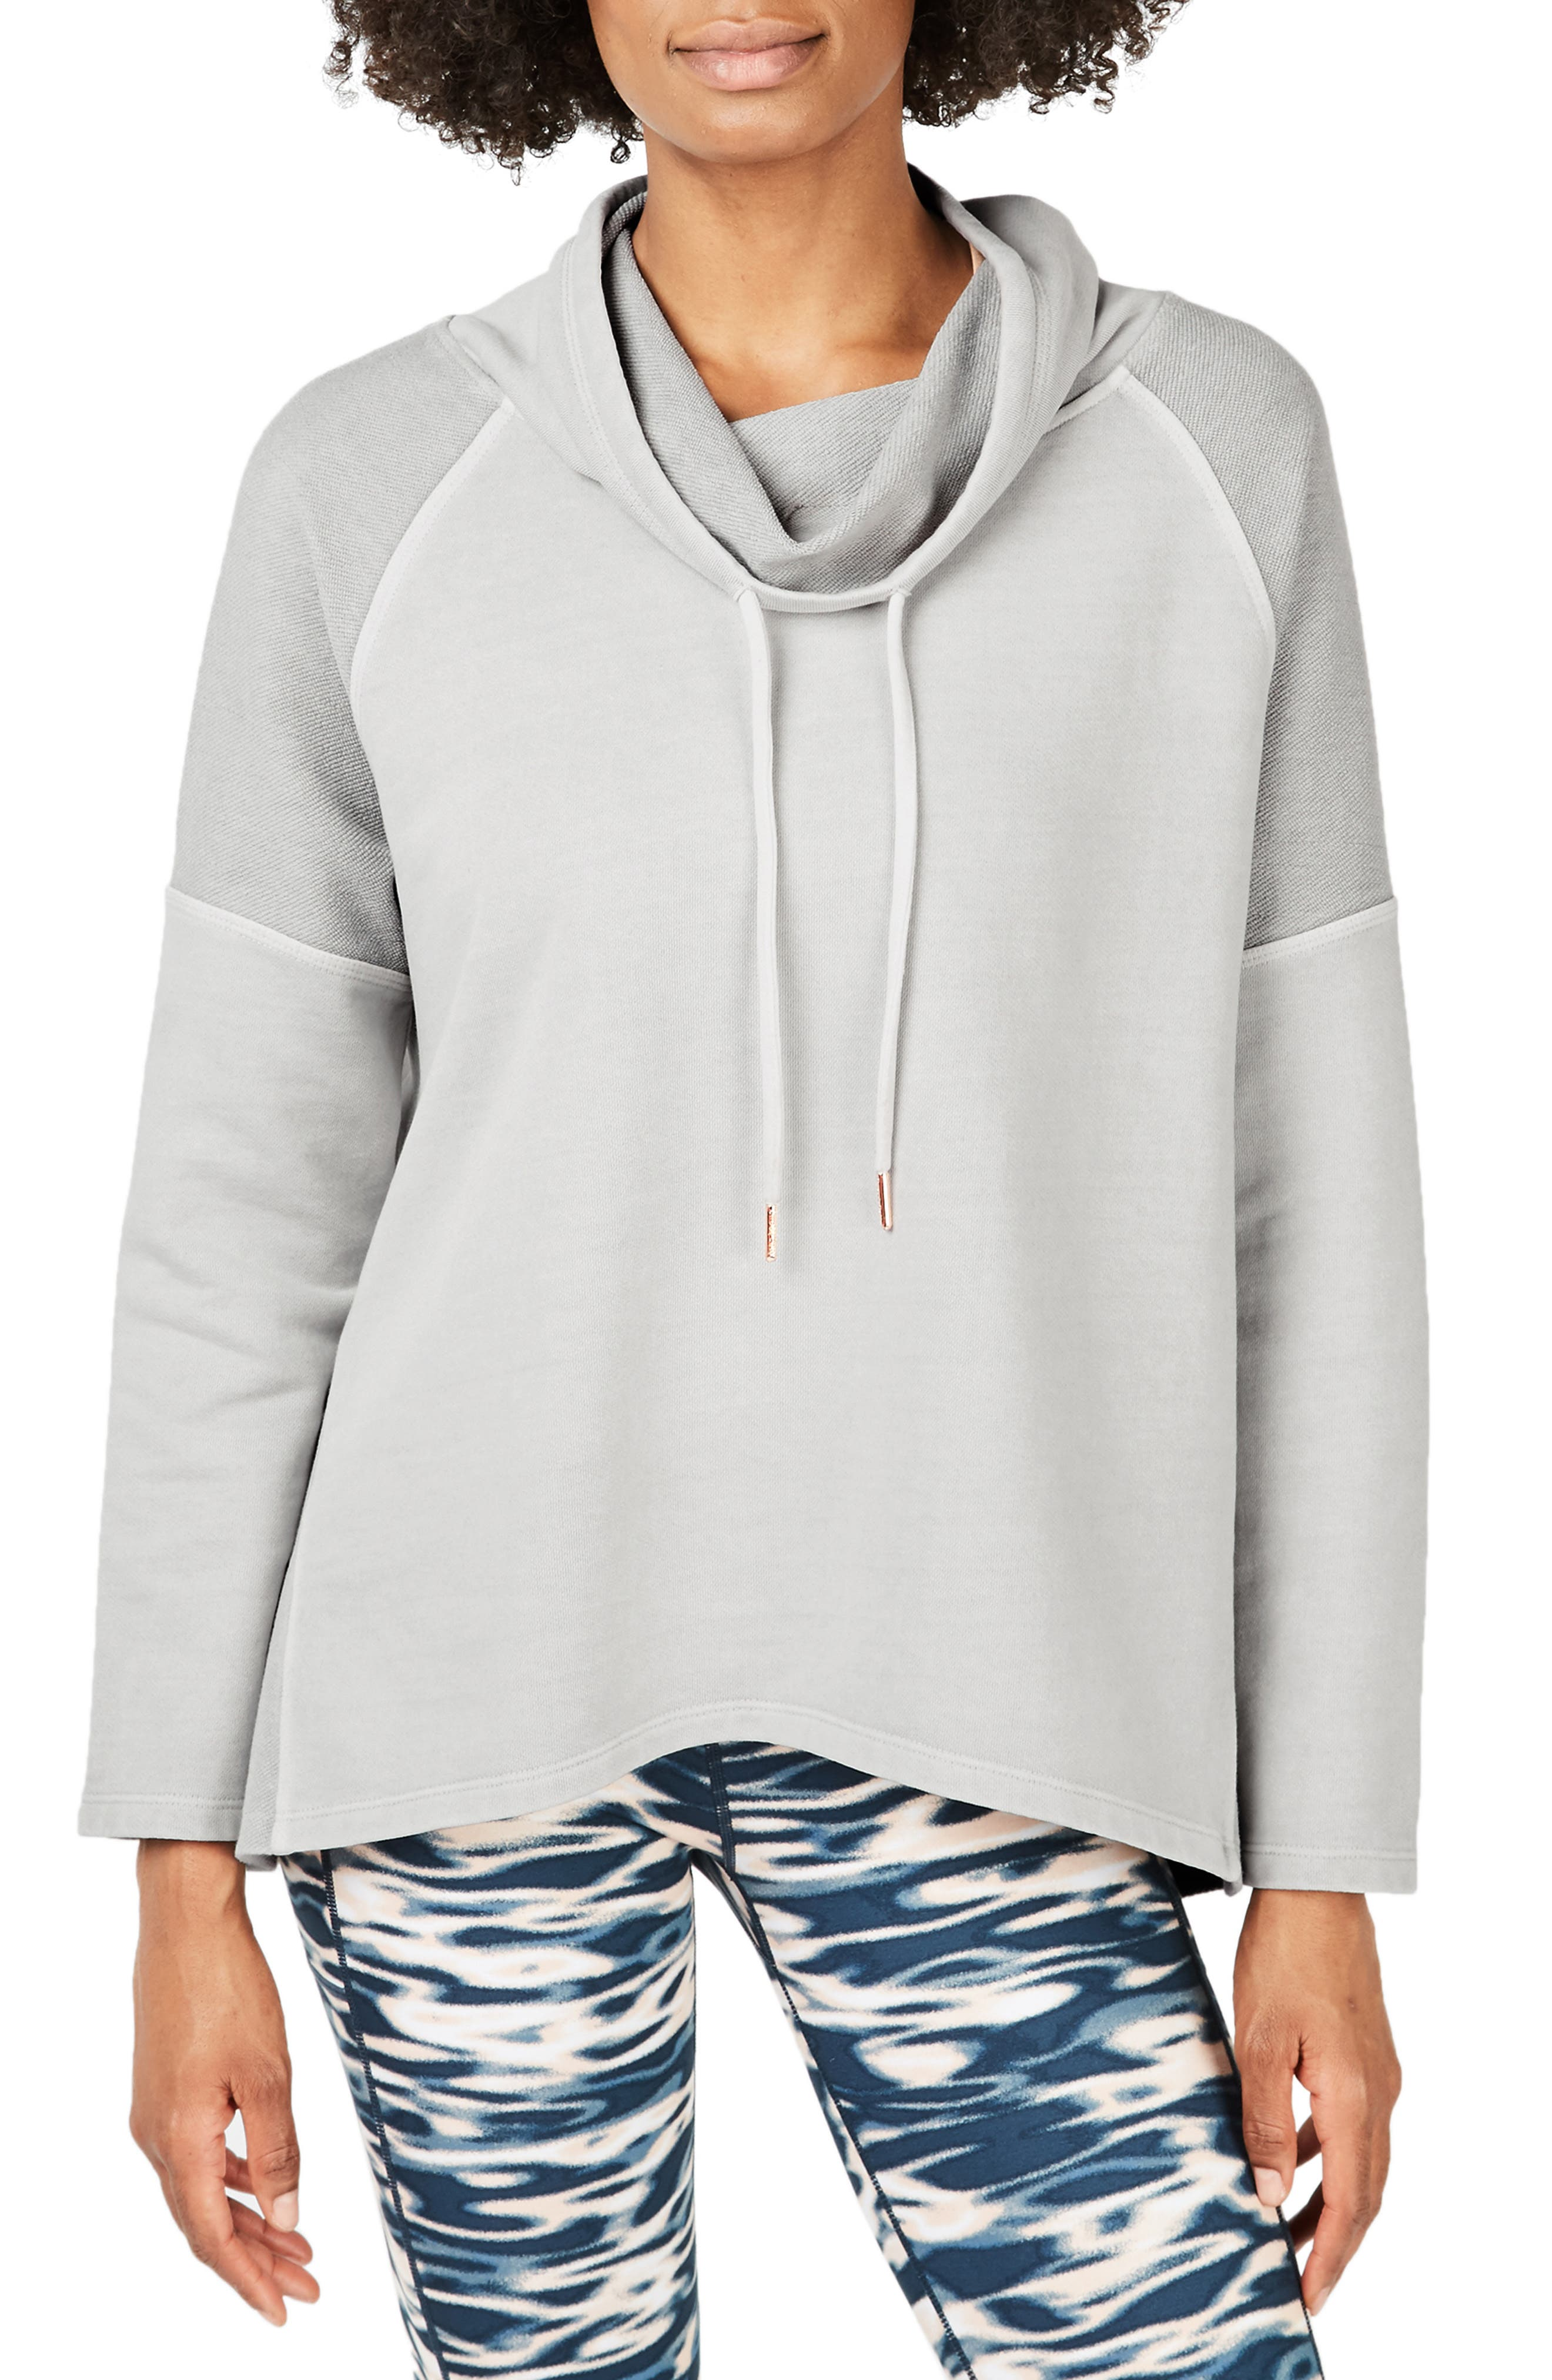 Keep your lounge look luxe in this drop-shoulder microterry hoodie updated with a flowy silhouette and a mix of smooth and reverse-loop textures. Style Name: Sweaty Betty Paradise Hooded Pullover. Style Number: 6042250. Available in stores.